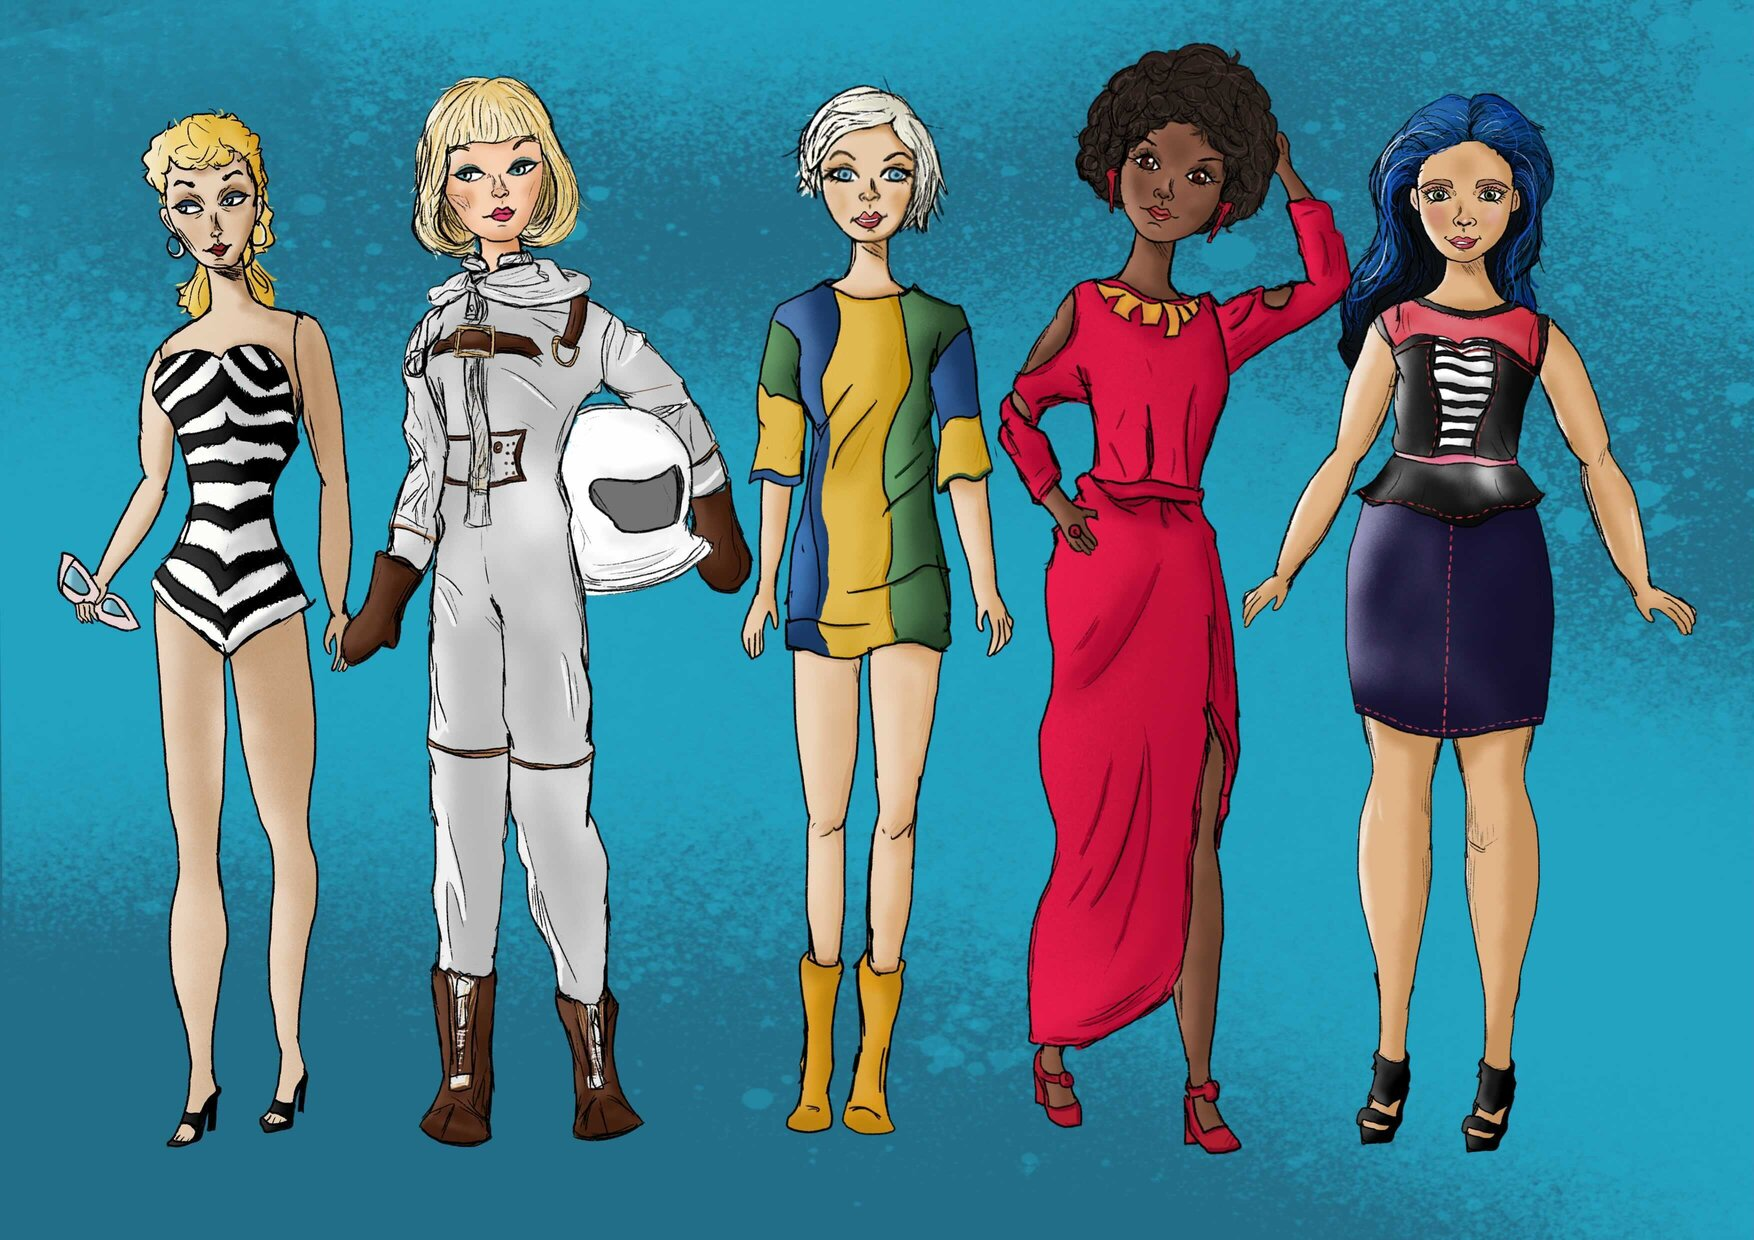 Five animated figures of the Barbie over time